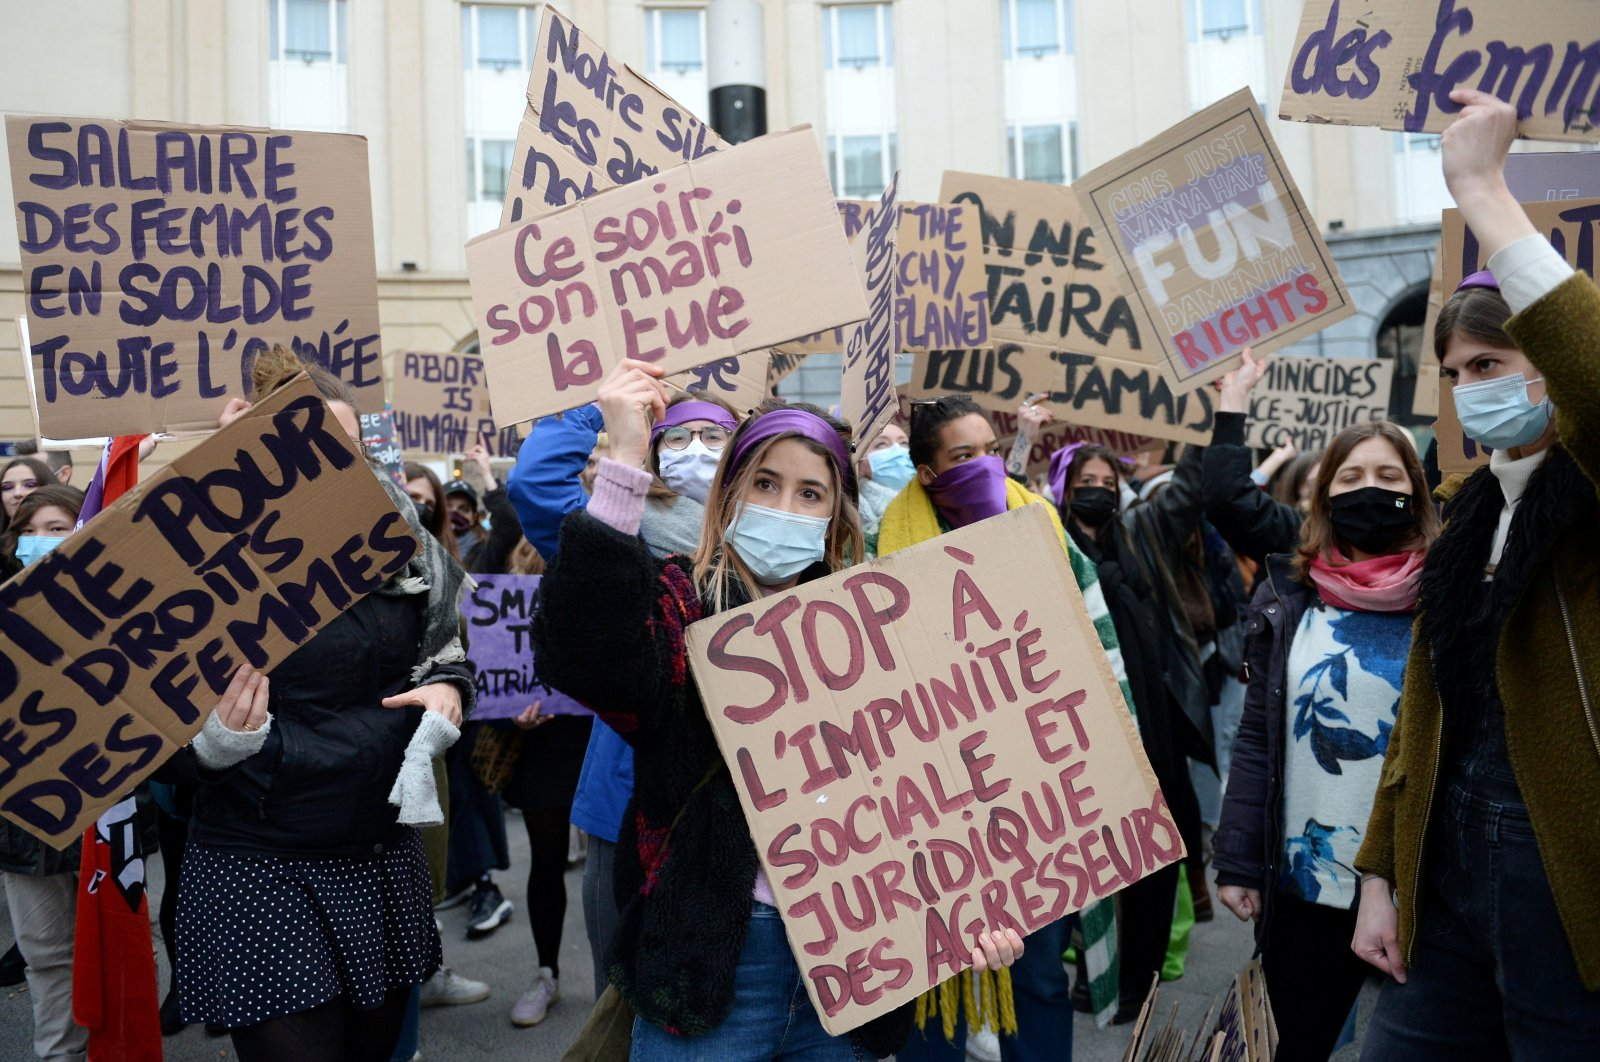 Women hold placards during a demonstration to call for gender equality and demanding an end to violence against women to mark International Women's Day in Brussels, Belgium, March 8, 2021. (Reuters Photo)